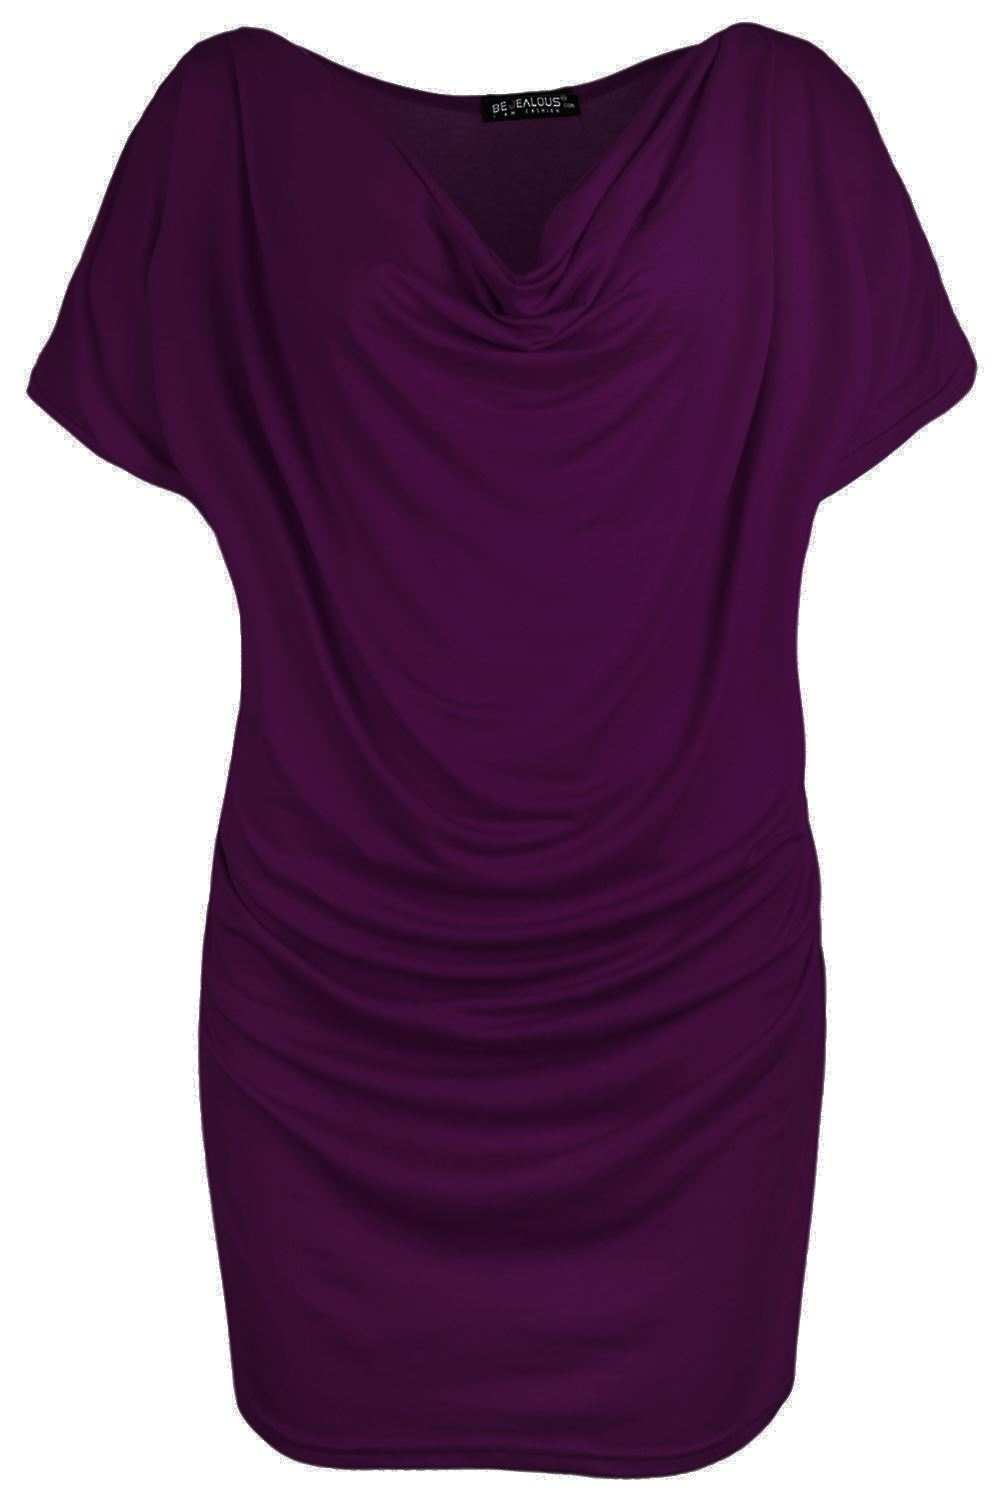 Womens-Gathered-Cowl-Neck-Short-Sleeve-Ruched-Ladies-Vest-Stretchy-T-Shirt-Top